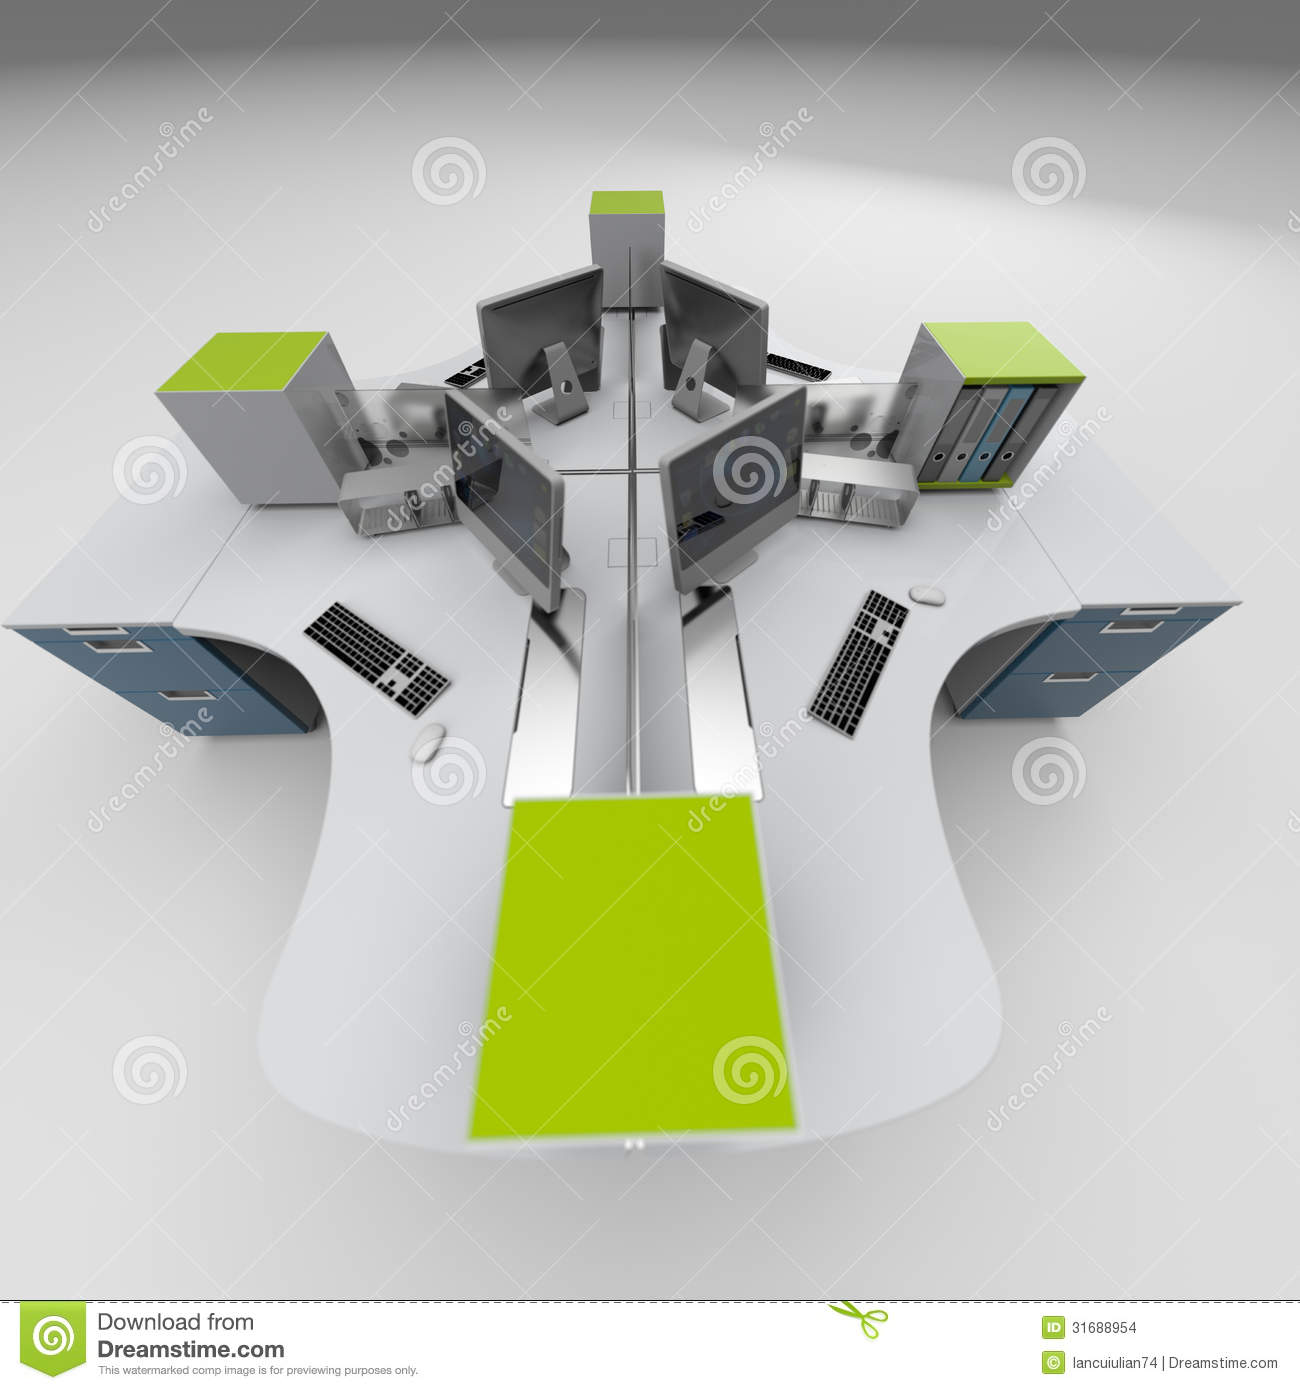 office furniture design rendering stock photos - image: 31324103